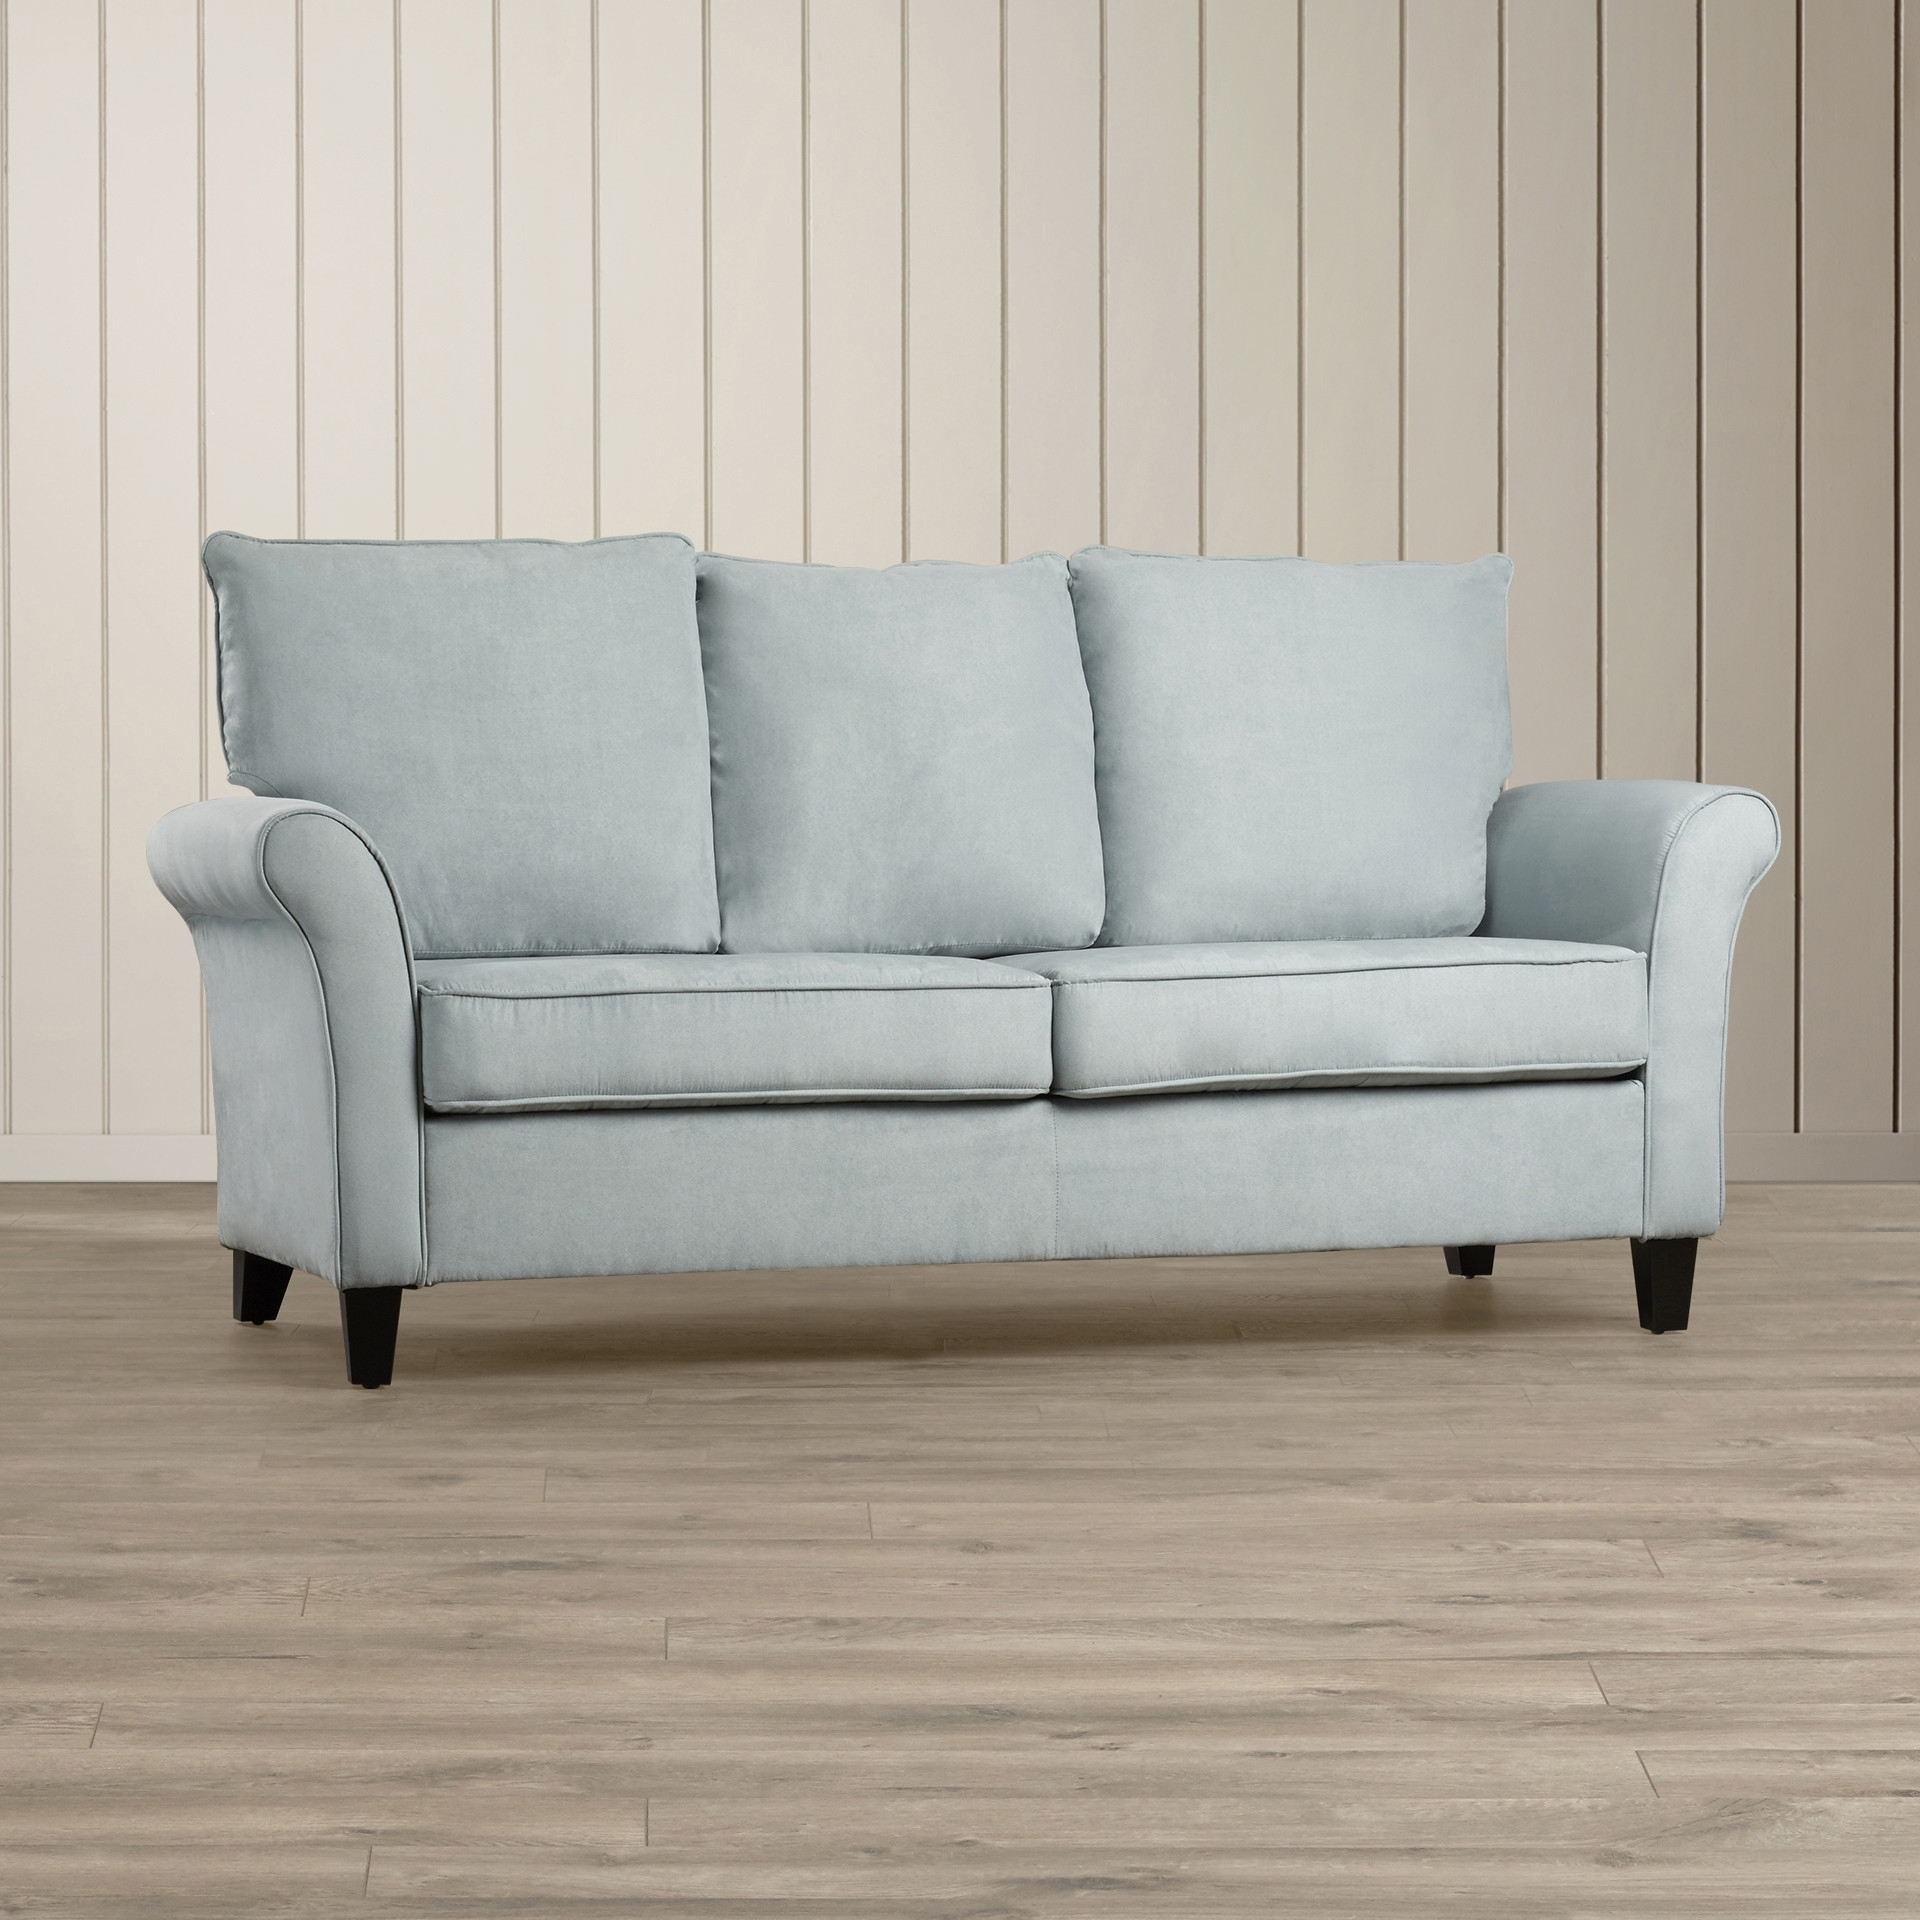 Widely Used Marvelous Wayfair Sofa About Fancy Wayfair Sofa 83 On Sofas And Pertaining To Fancy Sofas (View 20 of 20)